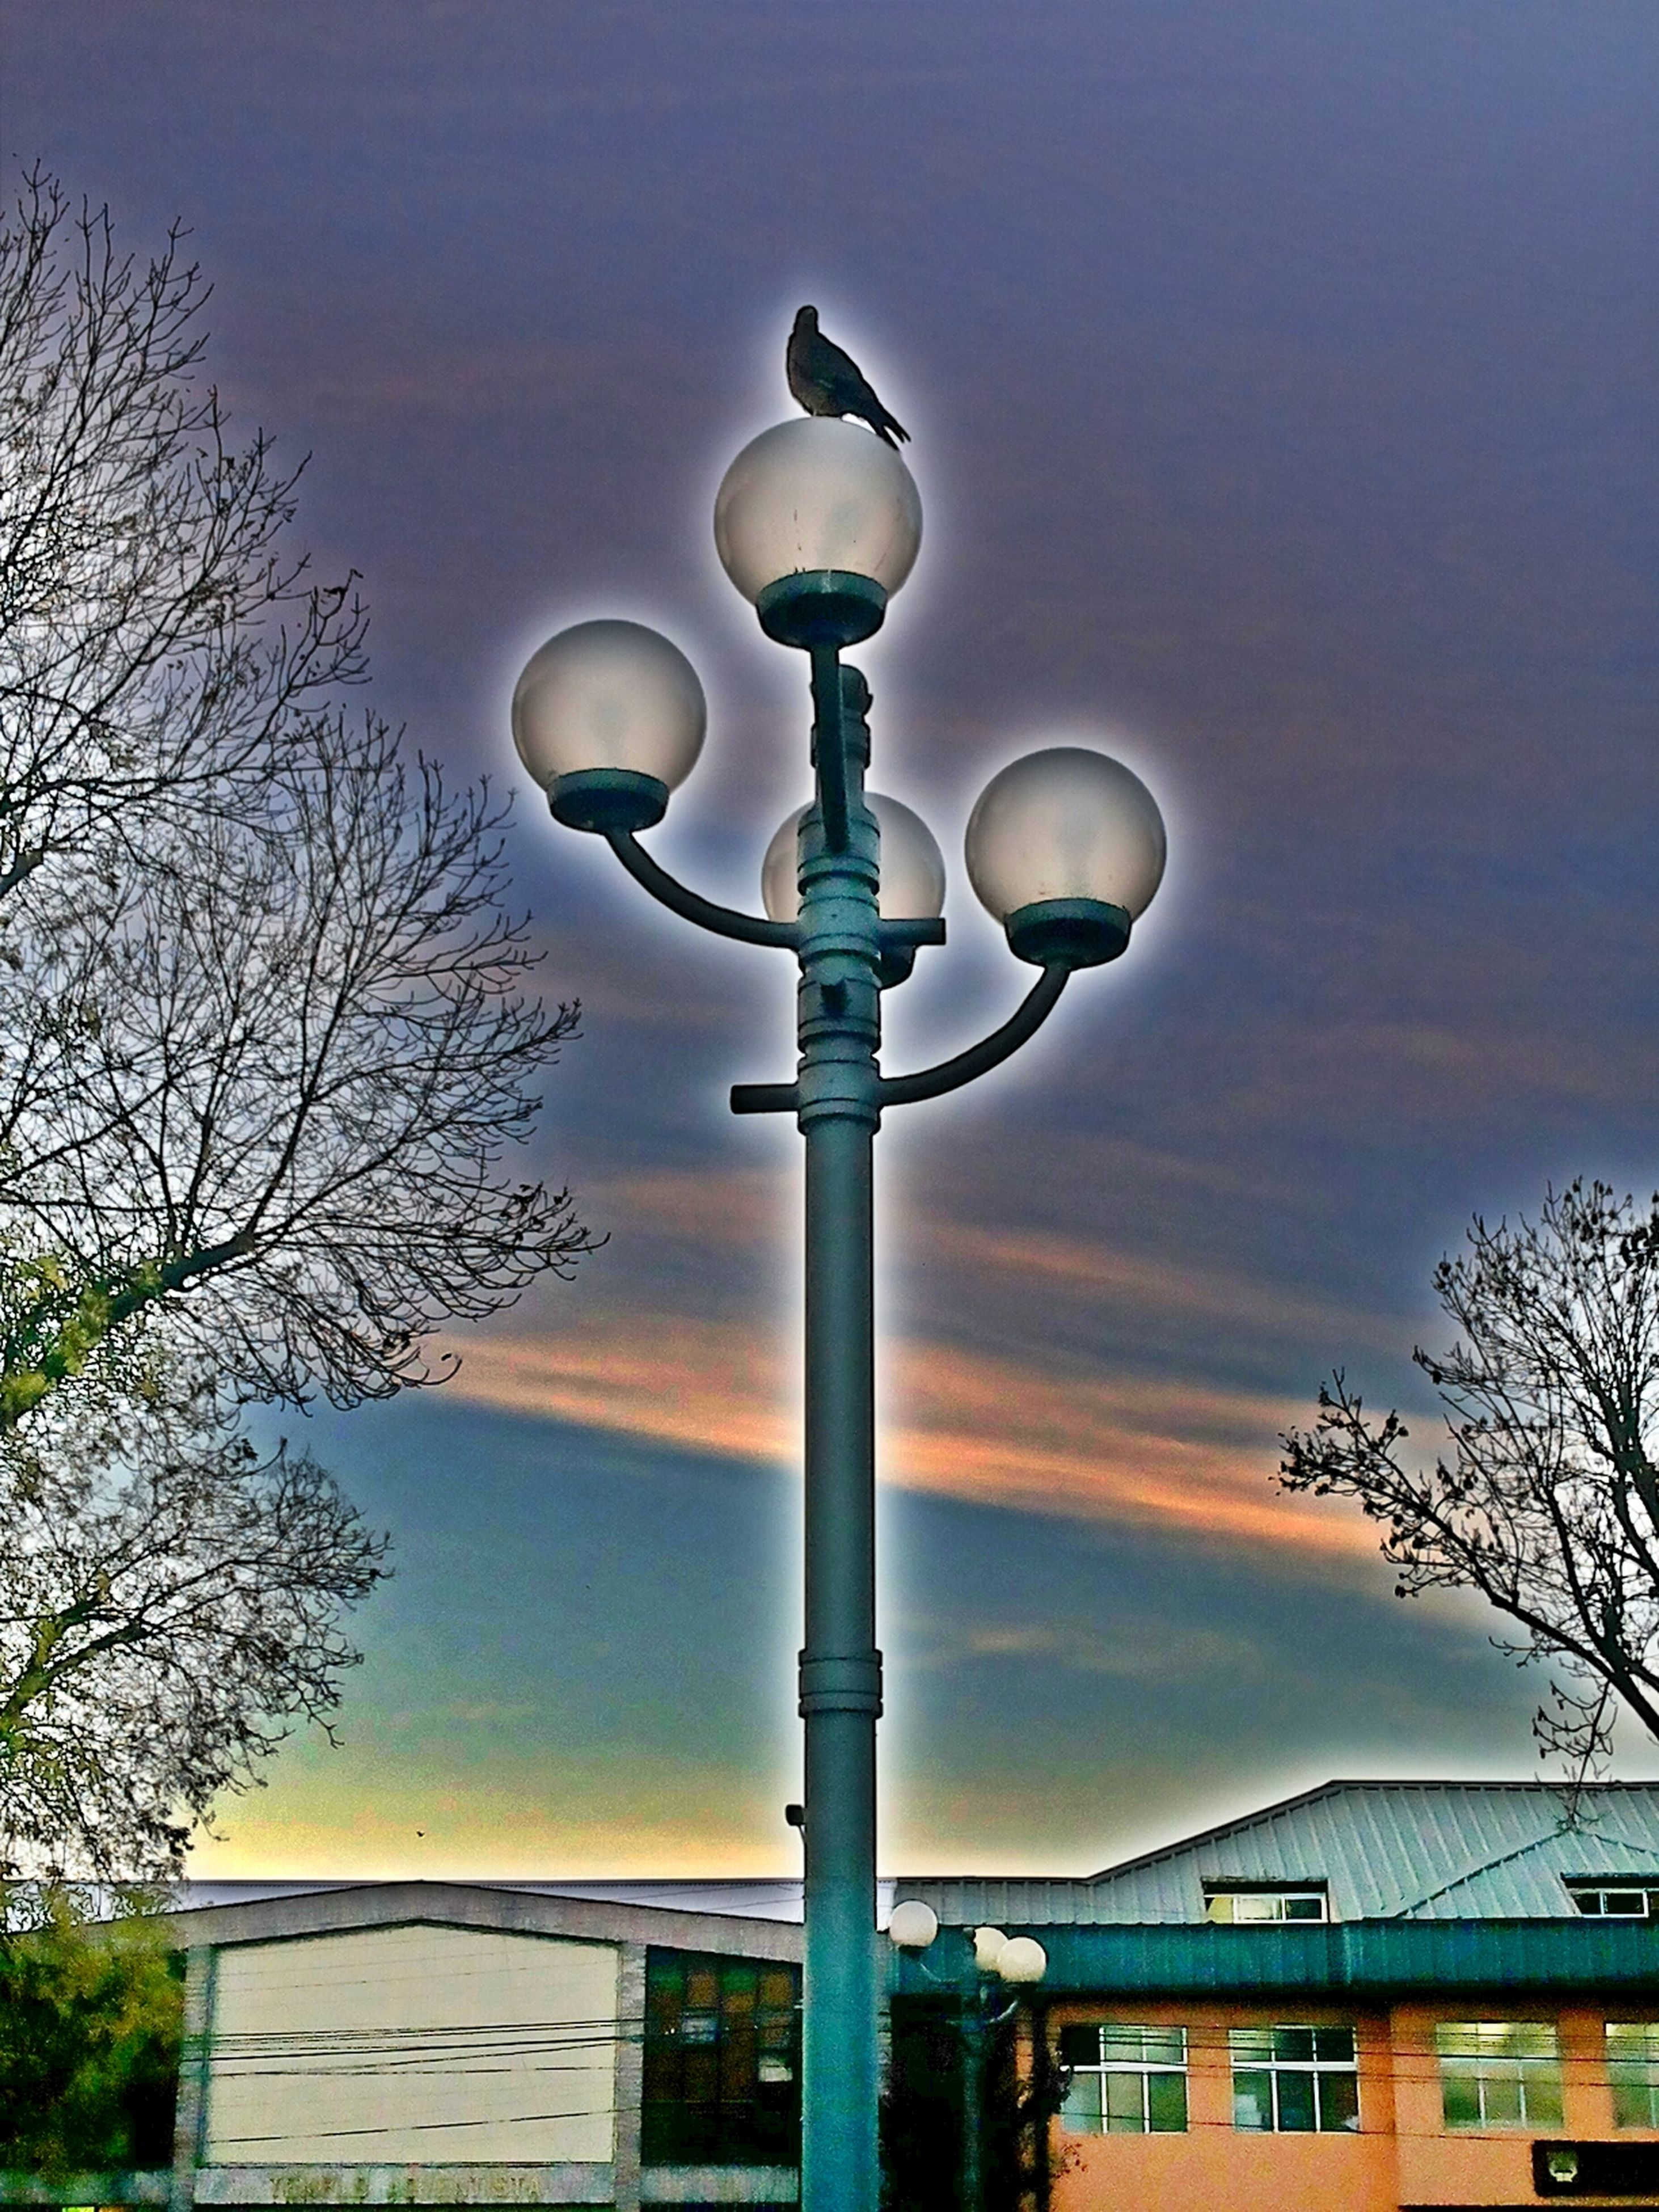 street light, sky, low angle view, lighting equipment, tree, built structure, architecture, cloud - sky, building exterior, lamp post, electricity, cloudy, silhouette, illuminated, cloud, electric light, dusk, outdoors, no people, bare tree